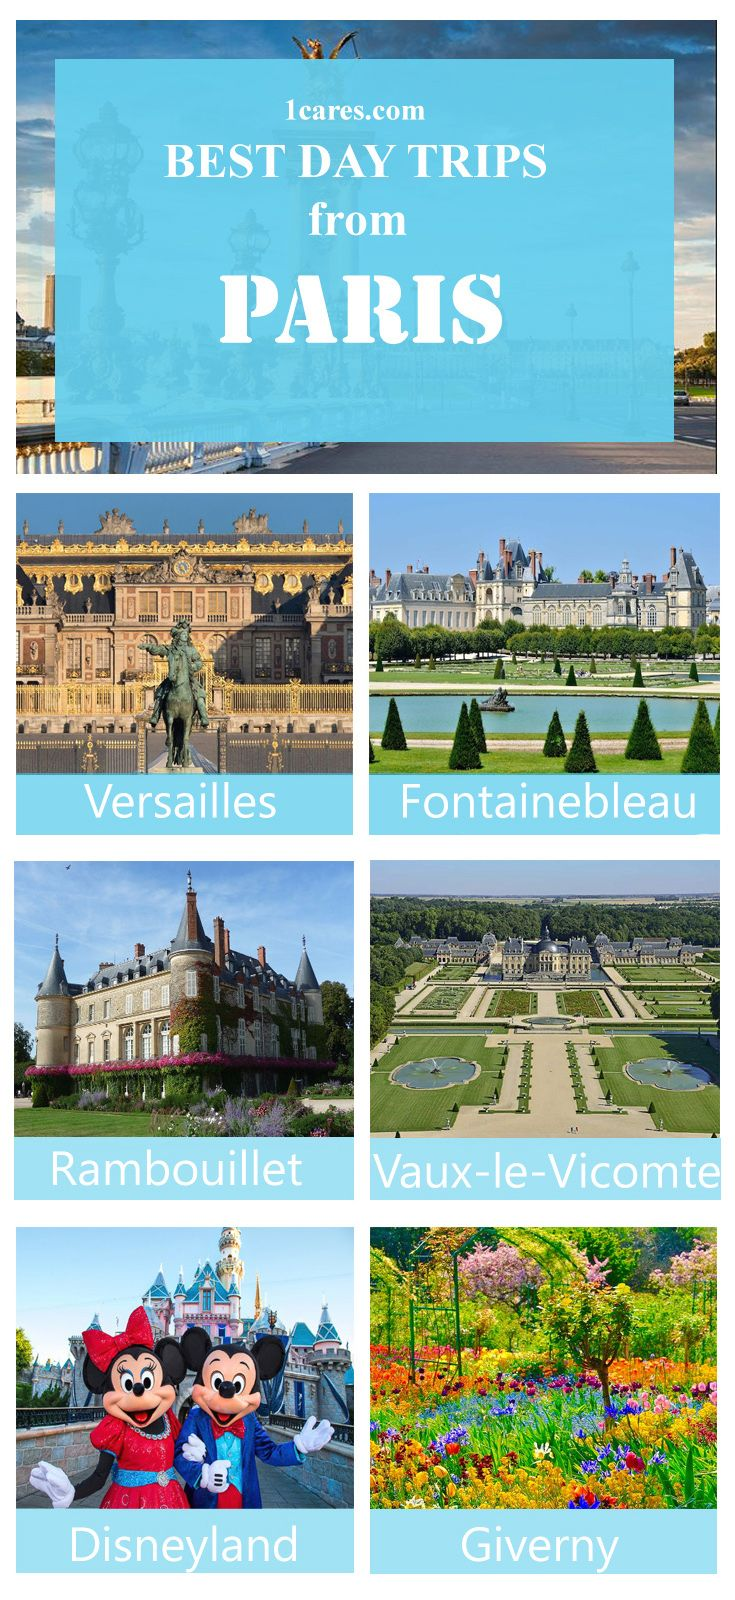 The best day trip destinations in Paris region. Your reliable travel partner in France. Chauffeur service in France. www.1CARES.com